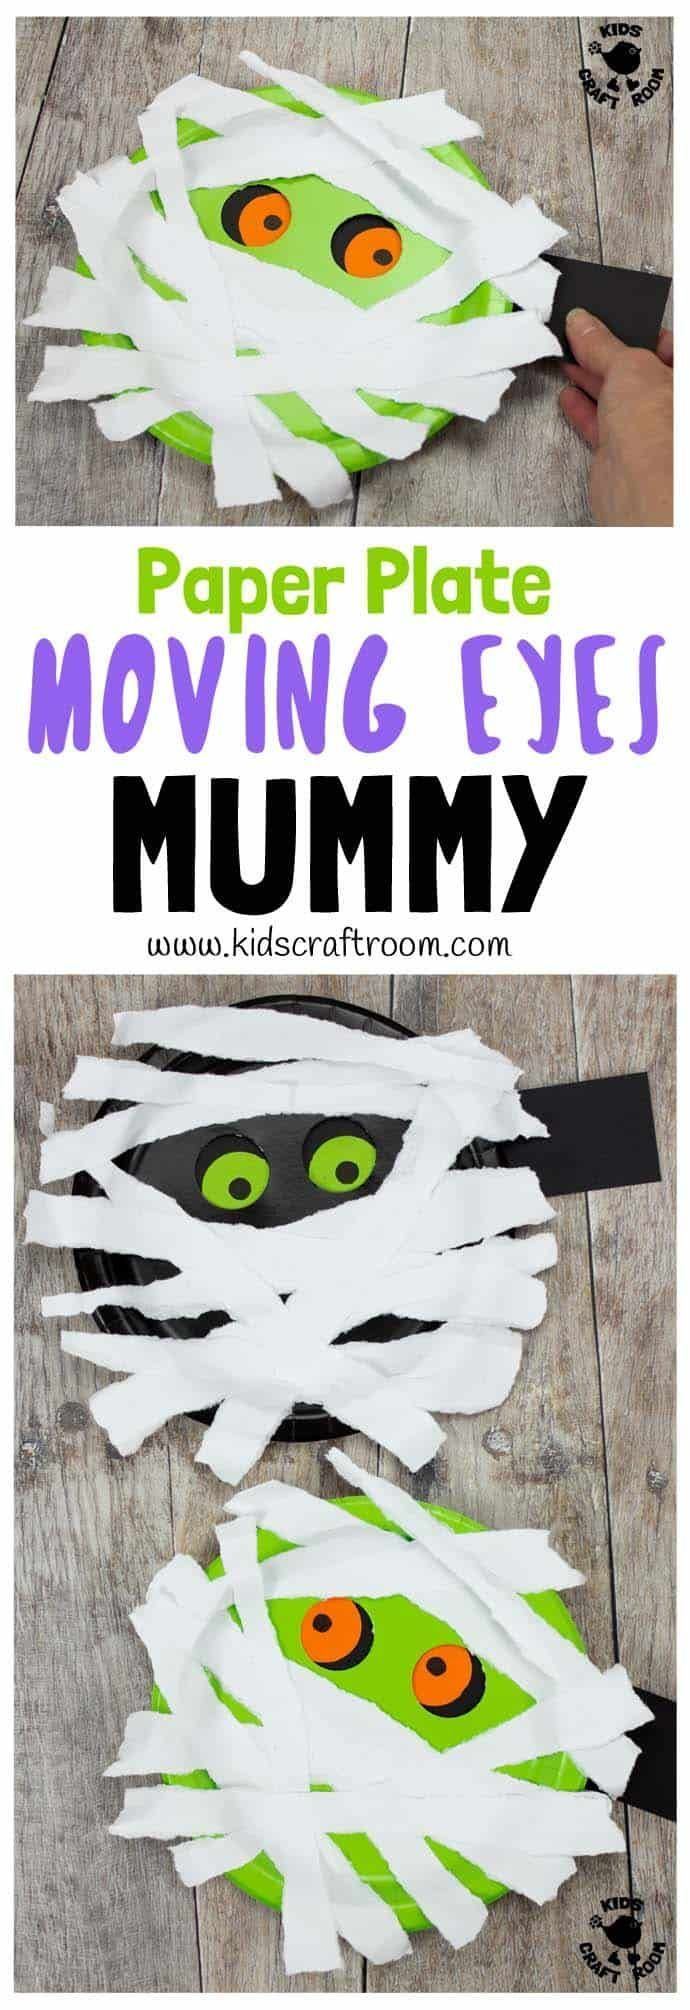 MOVING EYES PAPER PLATE MUMMY CRAFT Halloween crafts are great but interactive H...